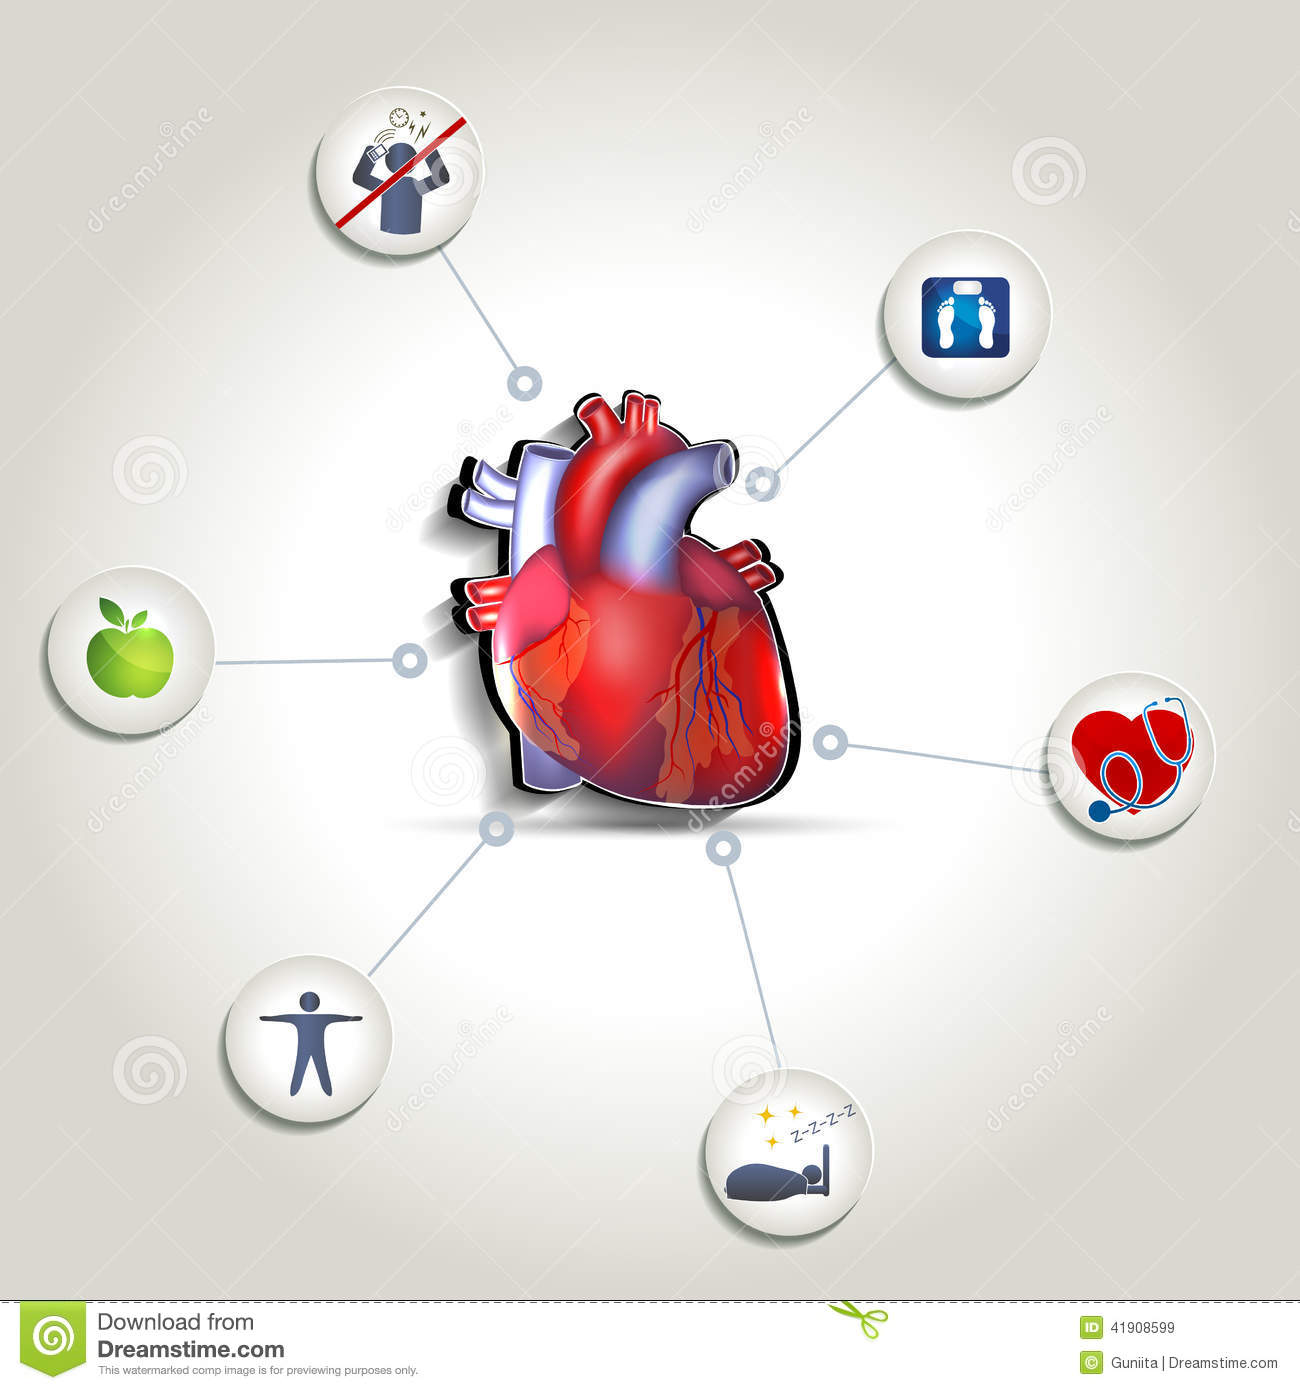 Healthy Heart Tips Food Fitness No Stress Good Sleep Weight Leads To Rhythm Illustrations Royalty Free